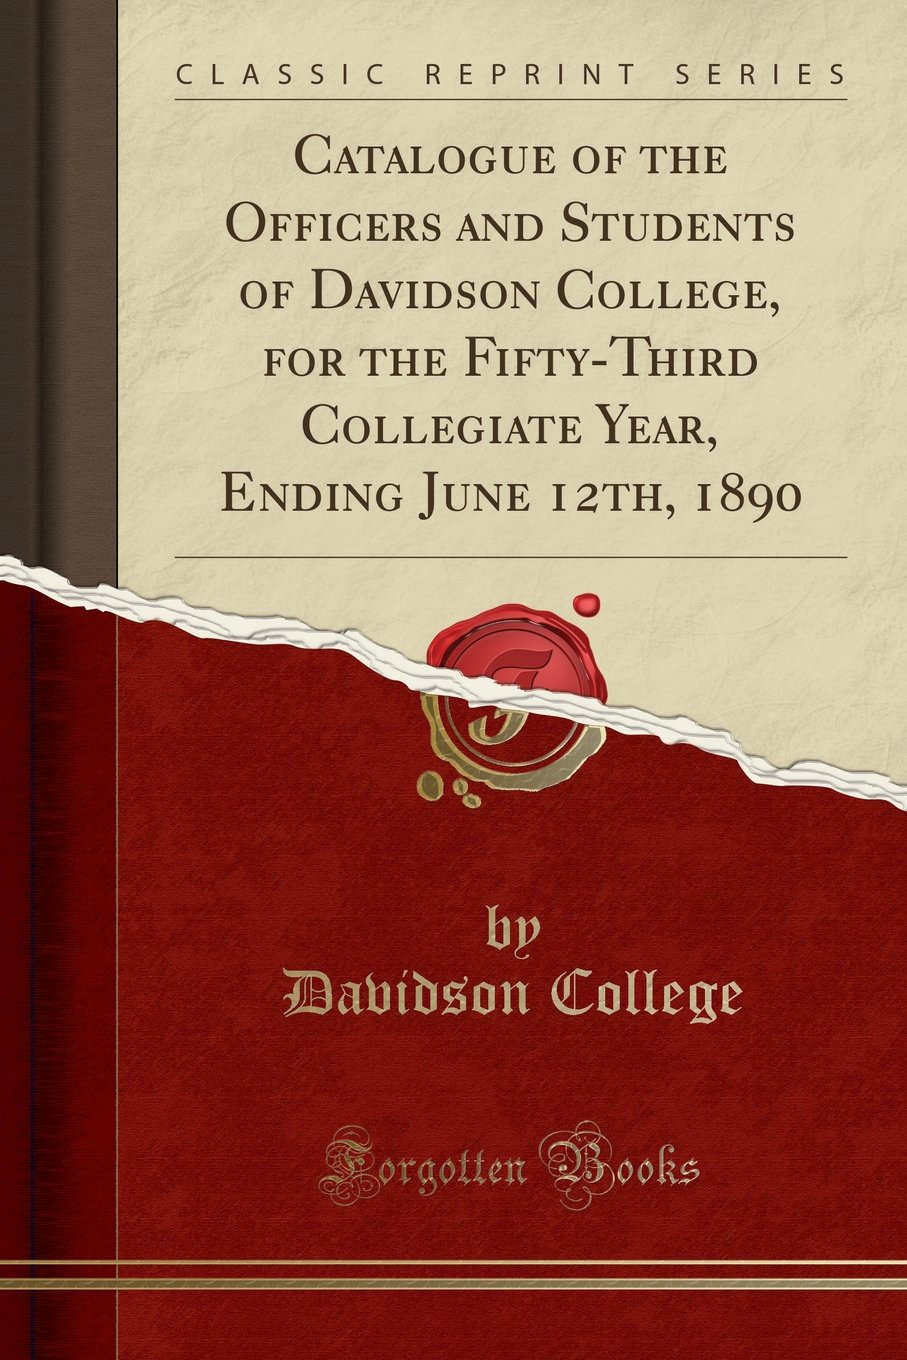 Catalogue of the Officers and Students of Davidson College, for the Fifty-Third Collegiate Year, Ending June 12th, 1890 (Classic Reprint) pdf epub